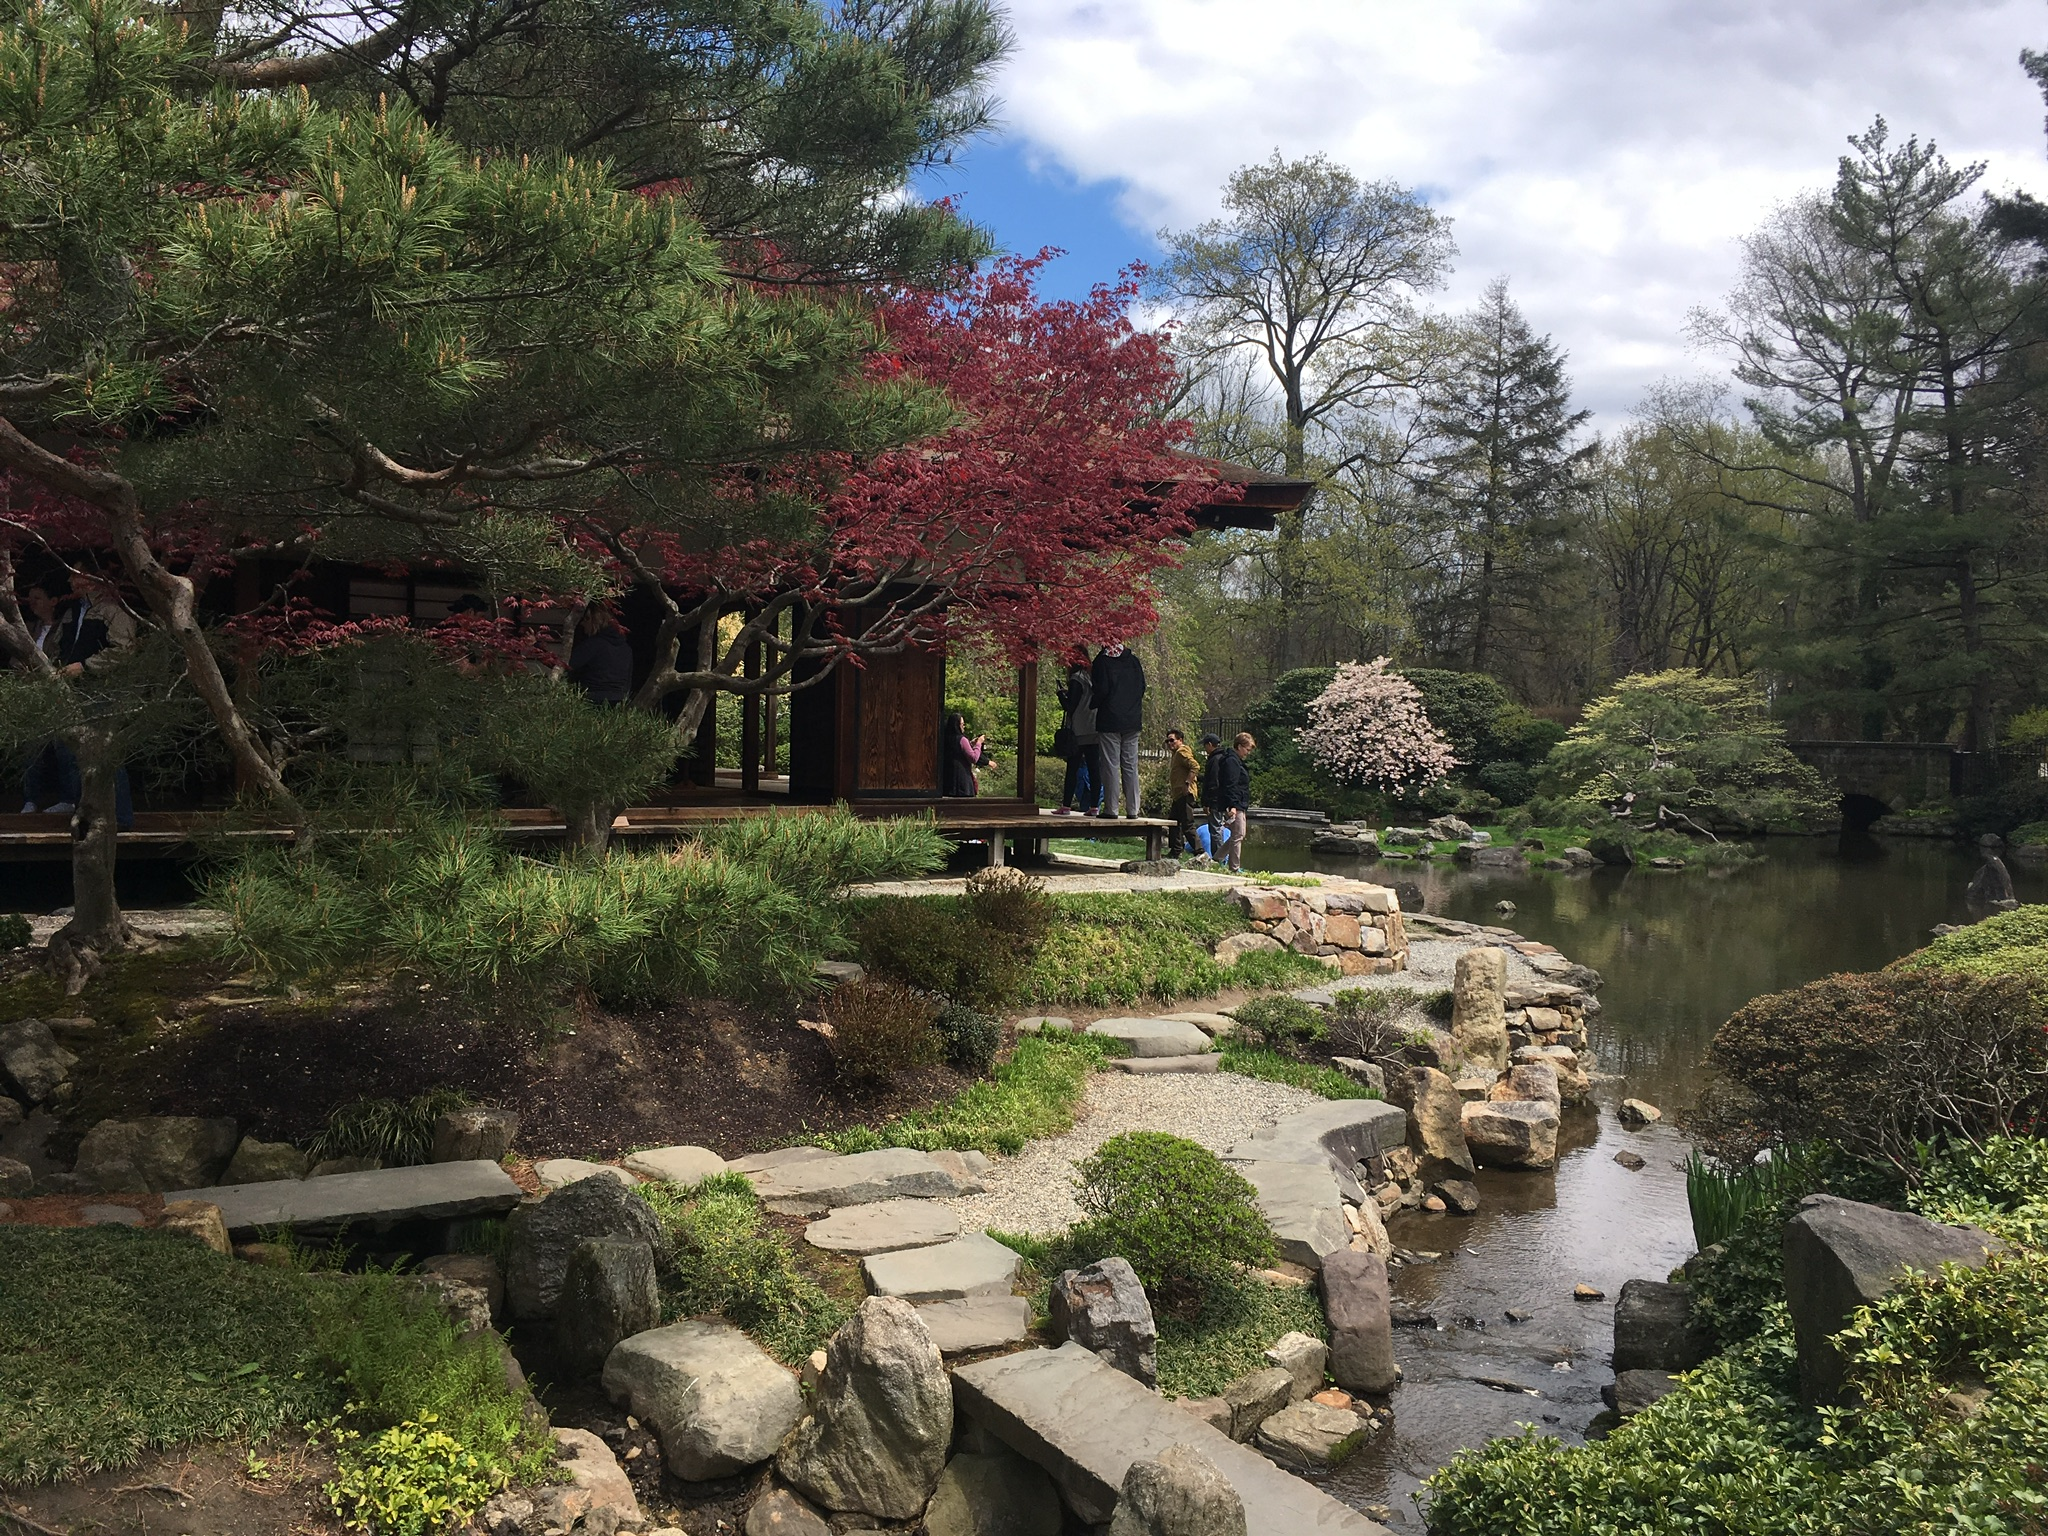 A View of the Shofuso Japanese House and Garden